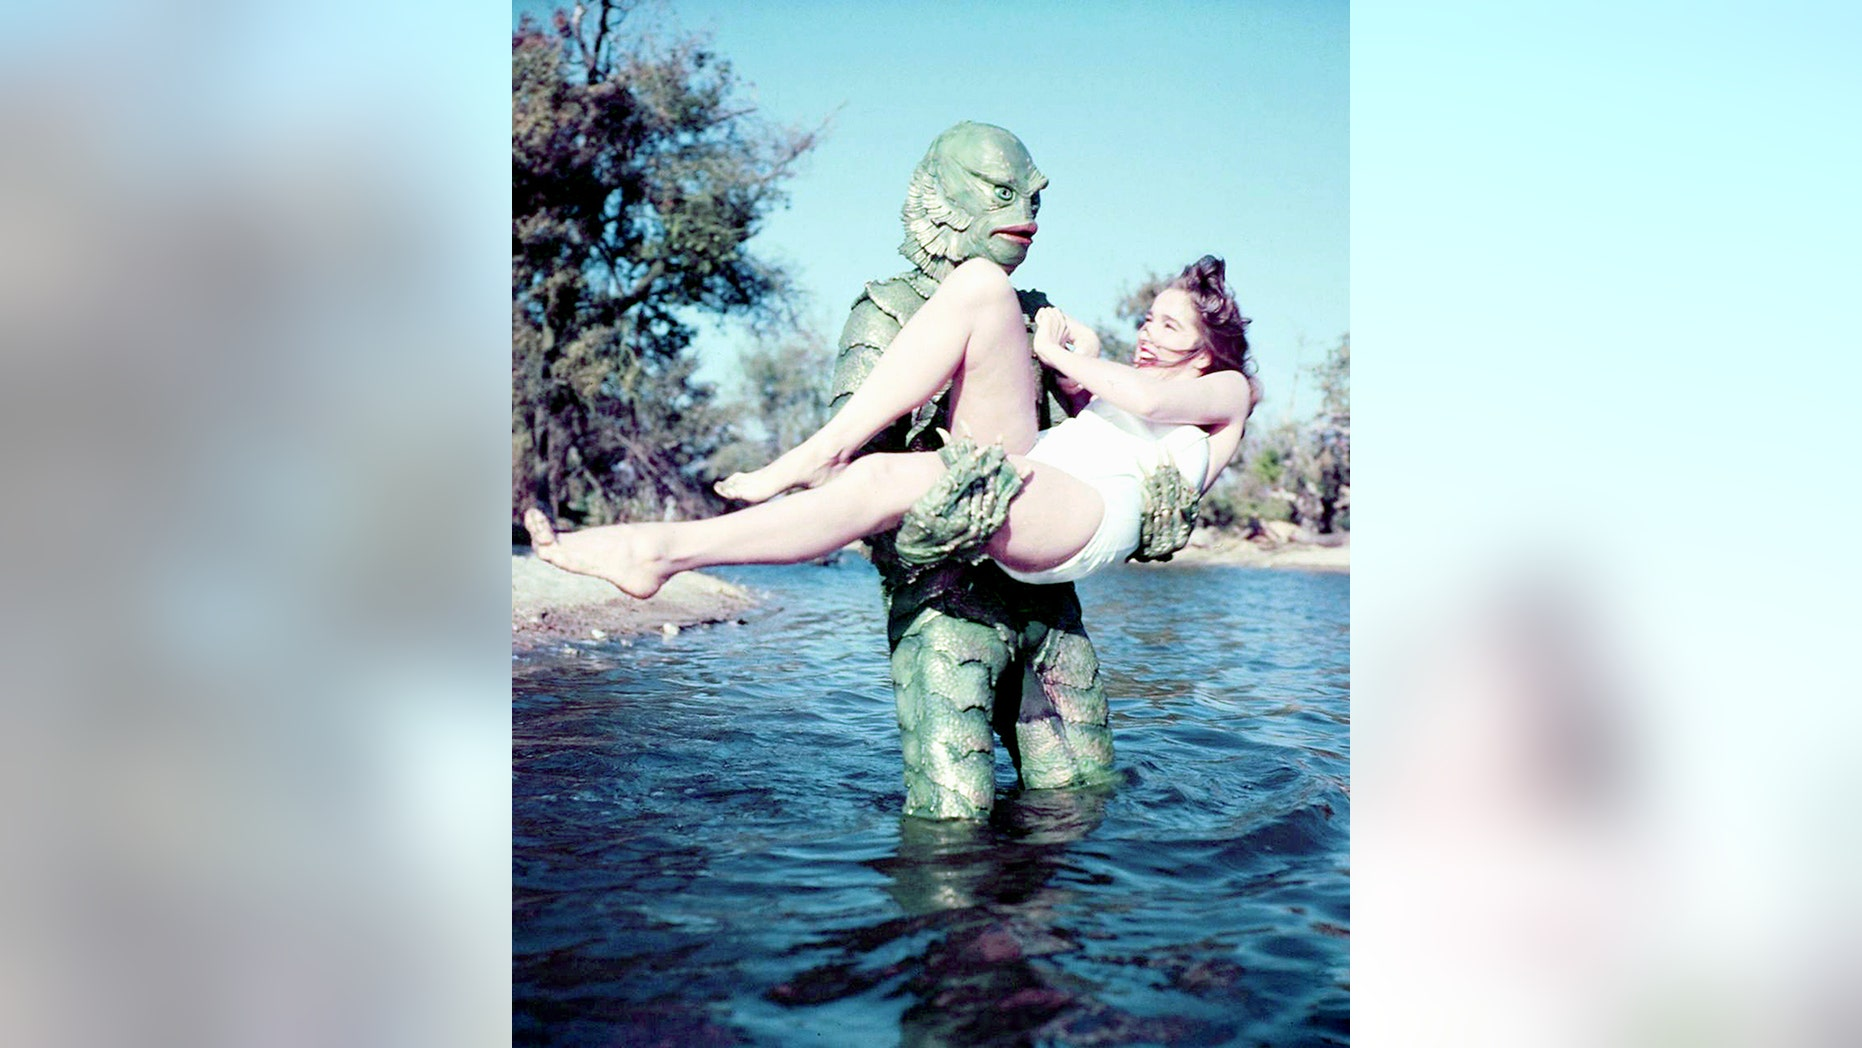 """American actors Ben Chapman (1928 - 2008) as Gill-man, and Julie Adams as Kay Lawrence, in """"Creature From the Black Lagoon,"""" directed by Jack Arnold, 1954."""